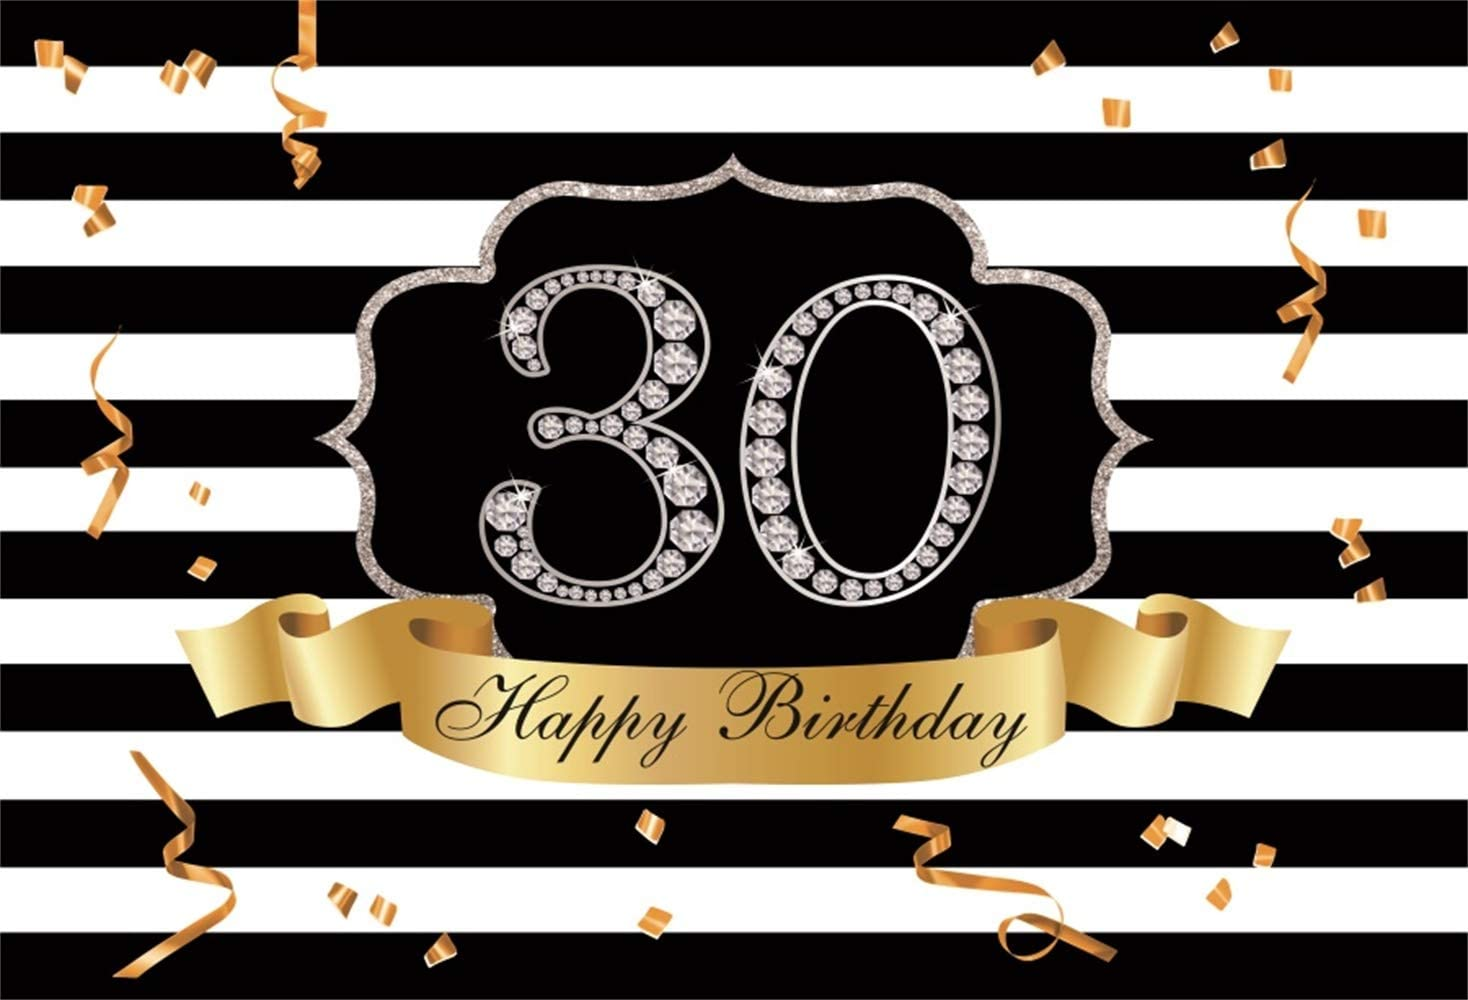 YongFoto 8x6ft Birthday Backdrop Happy 30th Birthday Diamonds Champagne High Heel Photography Background Party Theme Cake Table Banner Decoration Portrait Photo Studio Wall Vinyl Poster